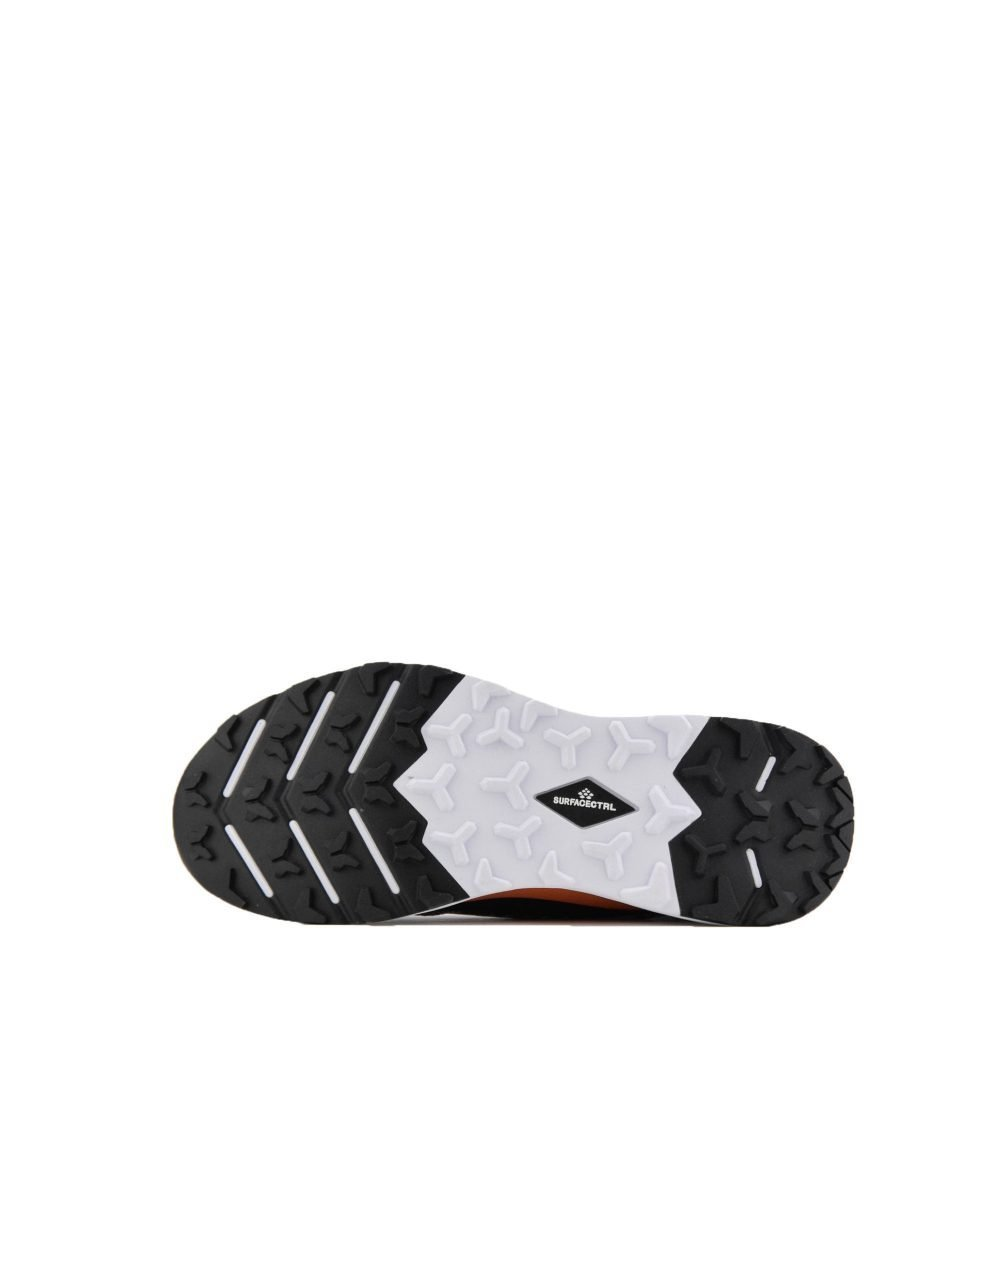 The North Face Vectiv Escape (NF0A4T2YKY41) Black/White